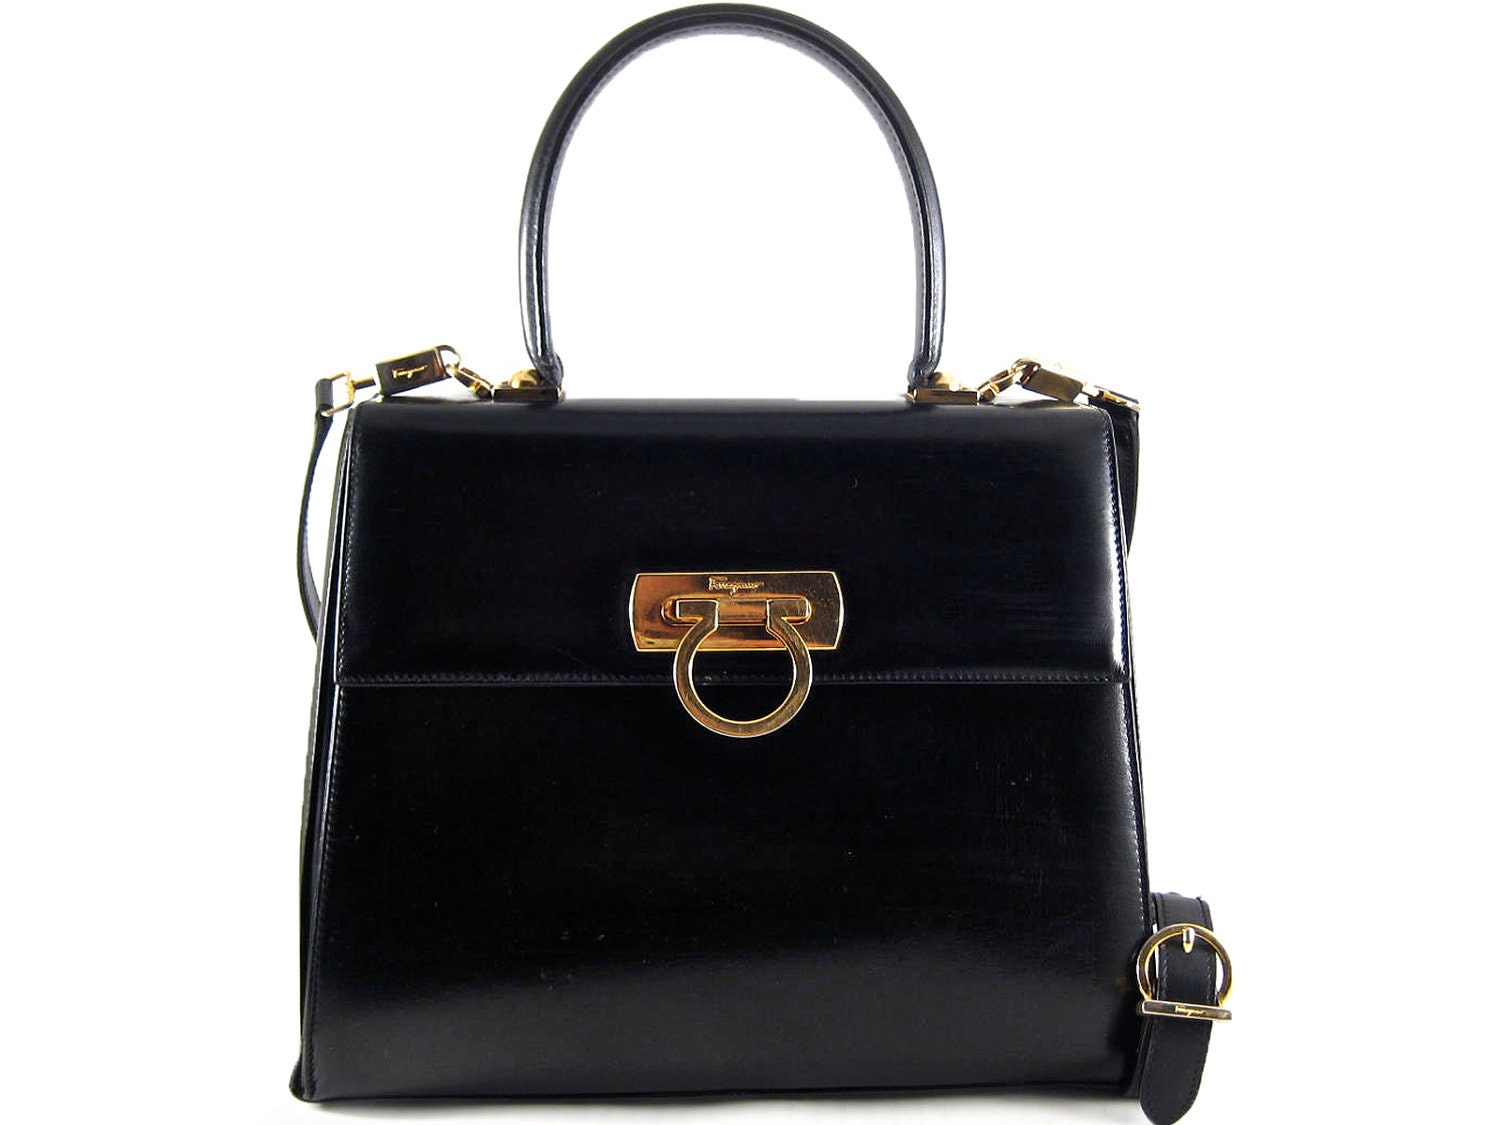 Salvatore Ferragamo Authentic Vintage Black Leather Satchel